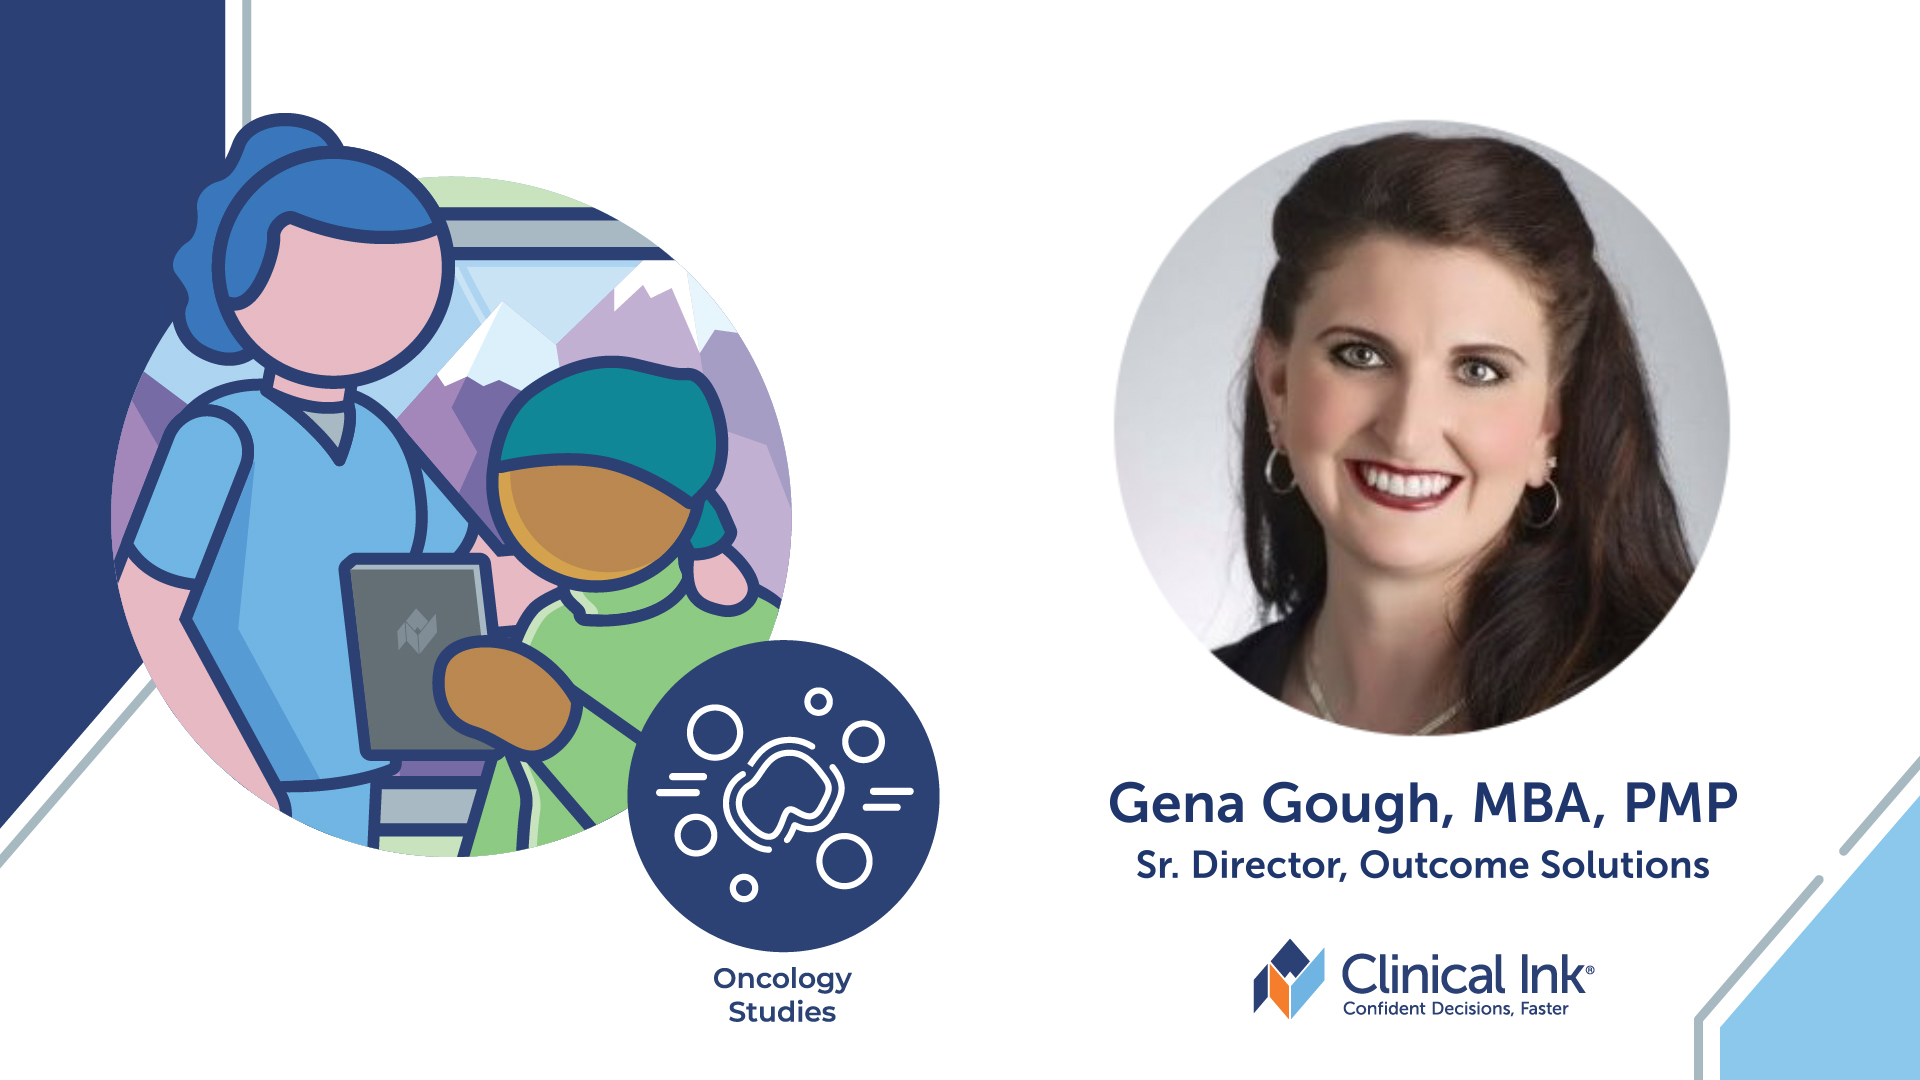 gena gough, mba, pmp senior director, outcome solutions clinical ink